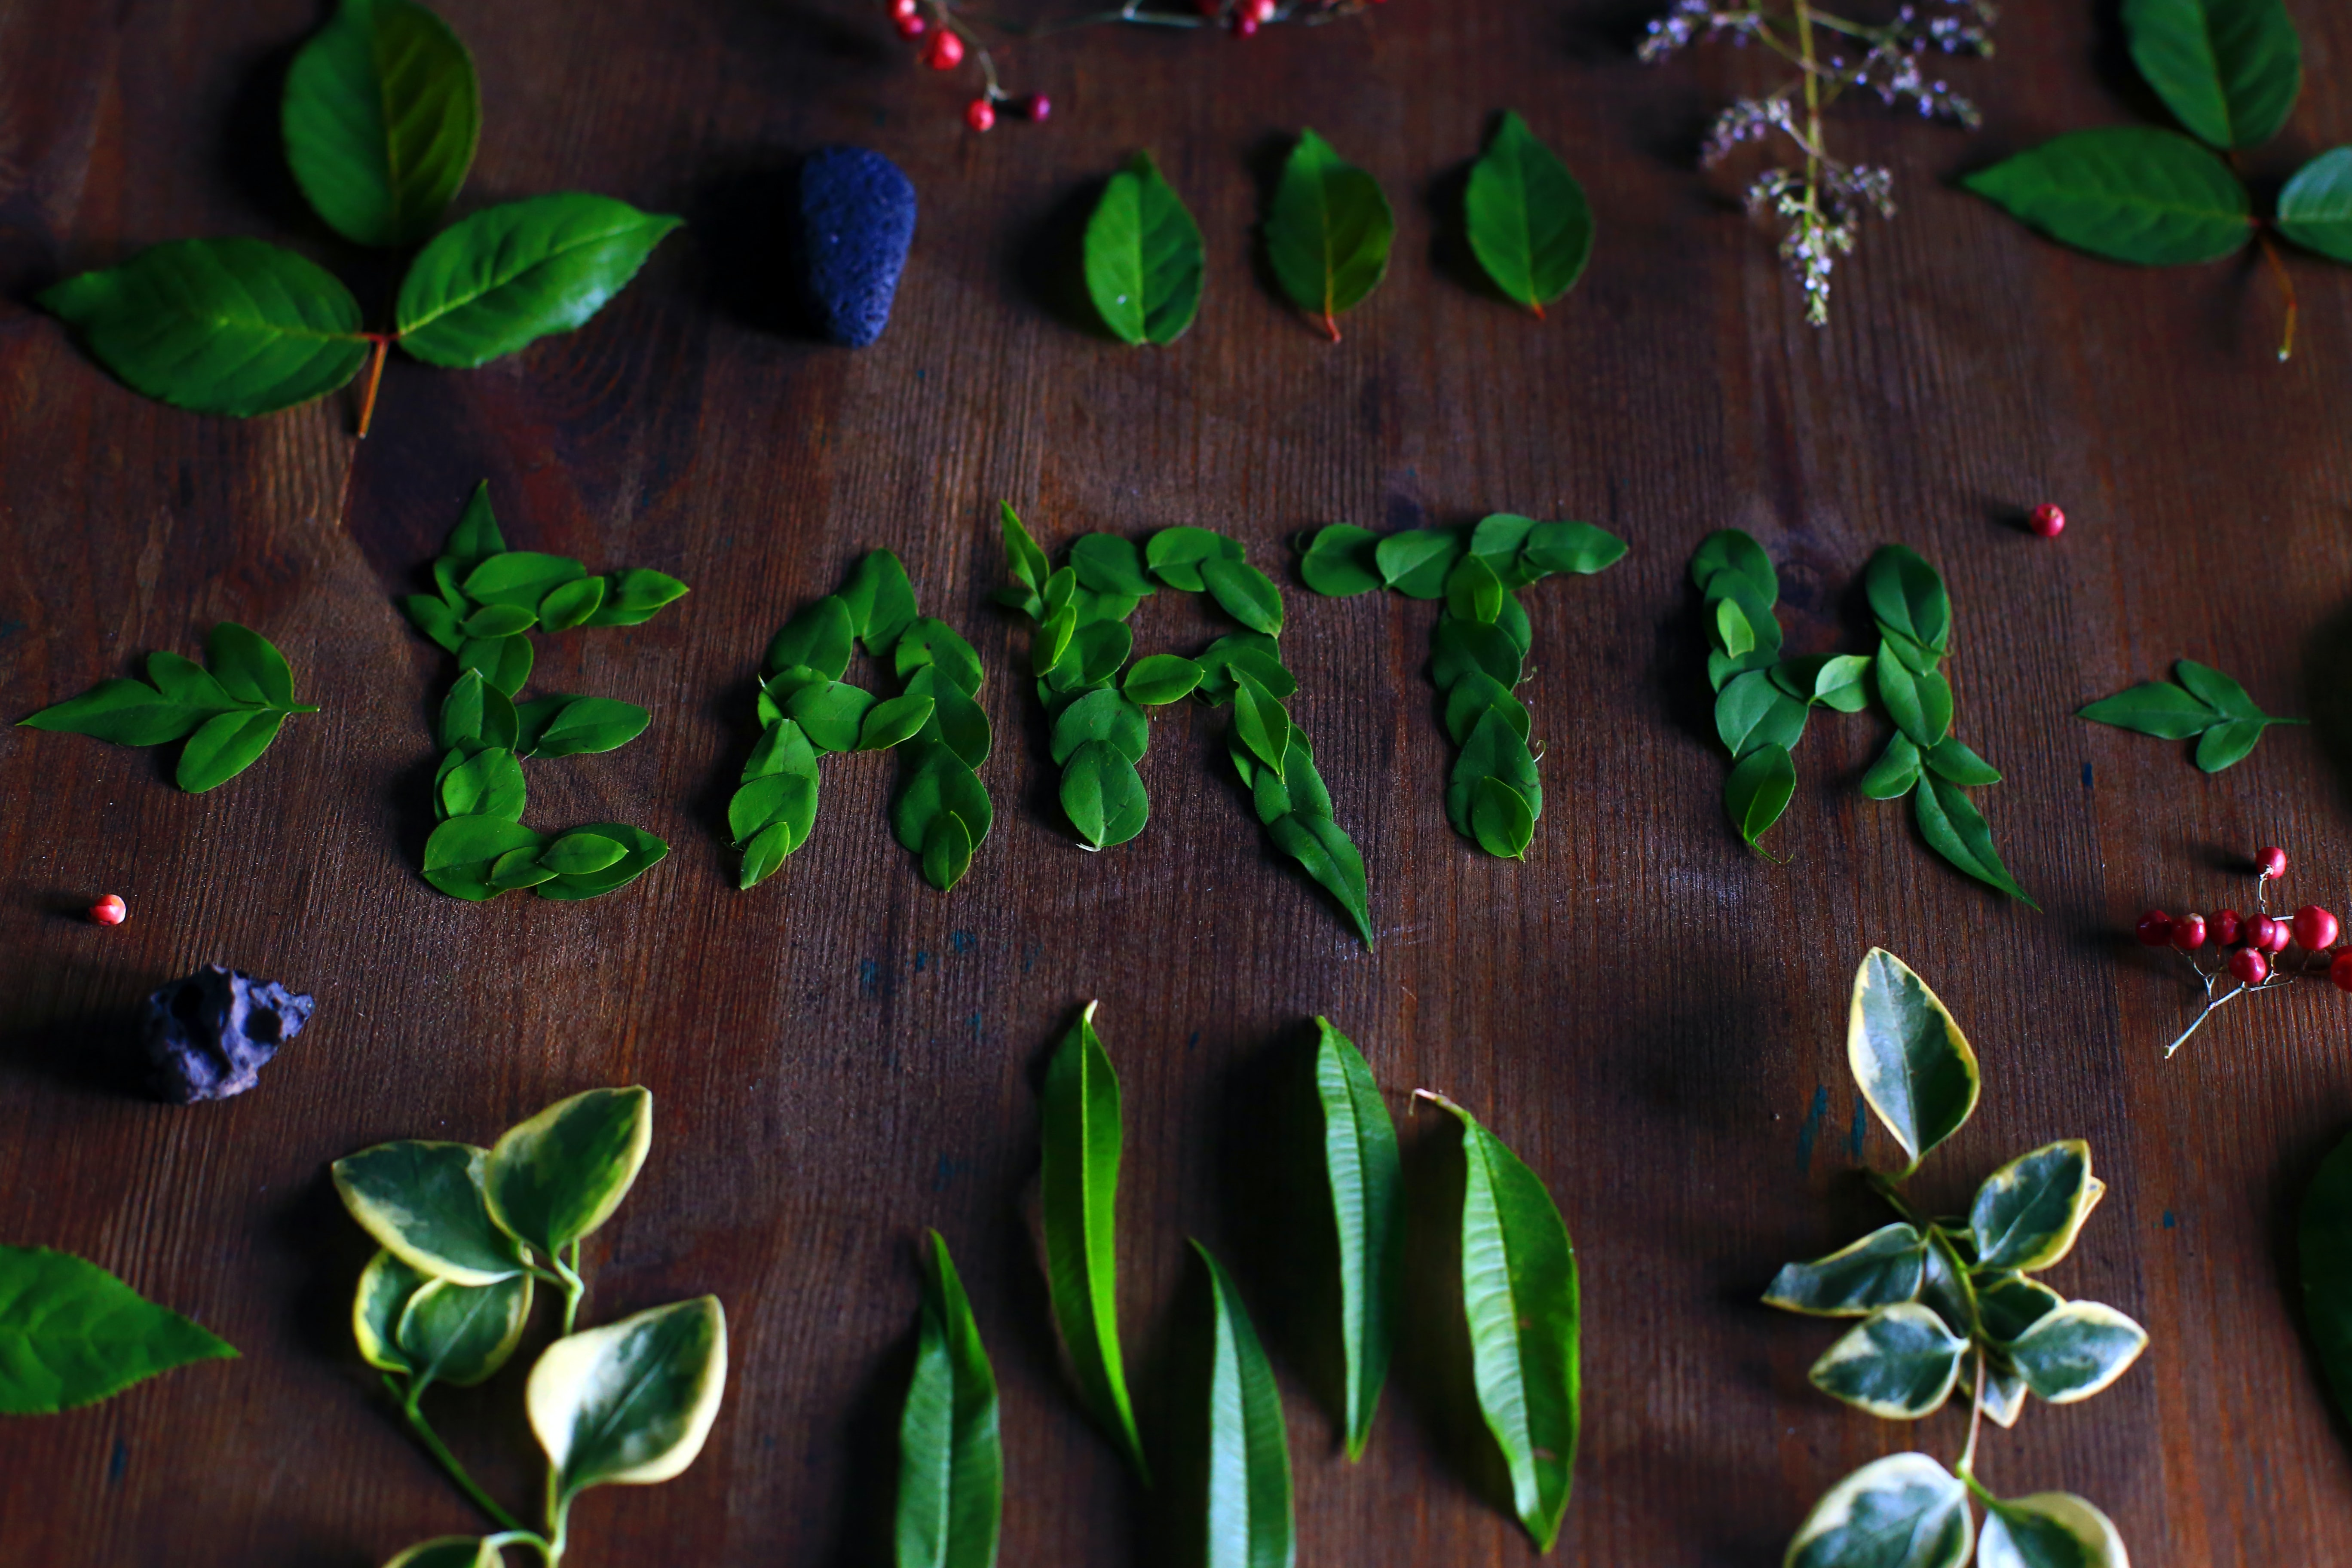 Plants And Leafs Arranged To Make Earth Text Artwork On Table In Barcelona